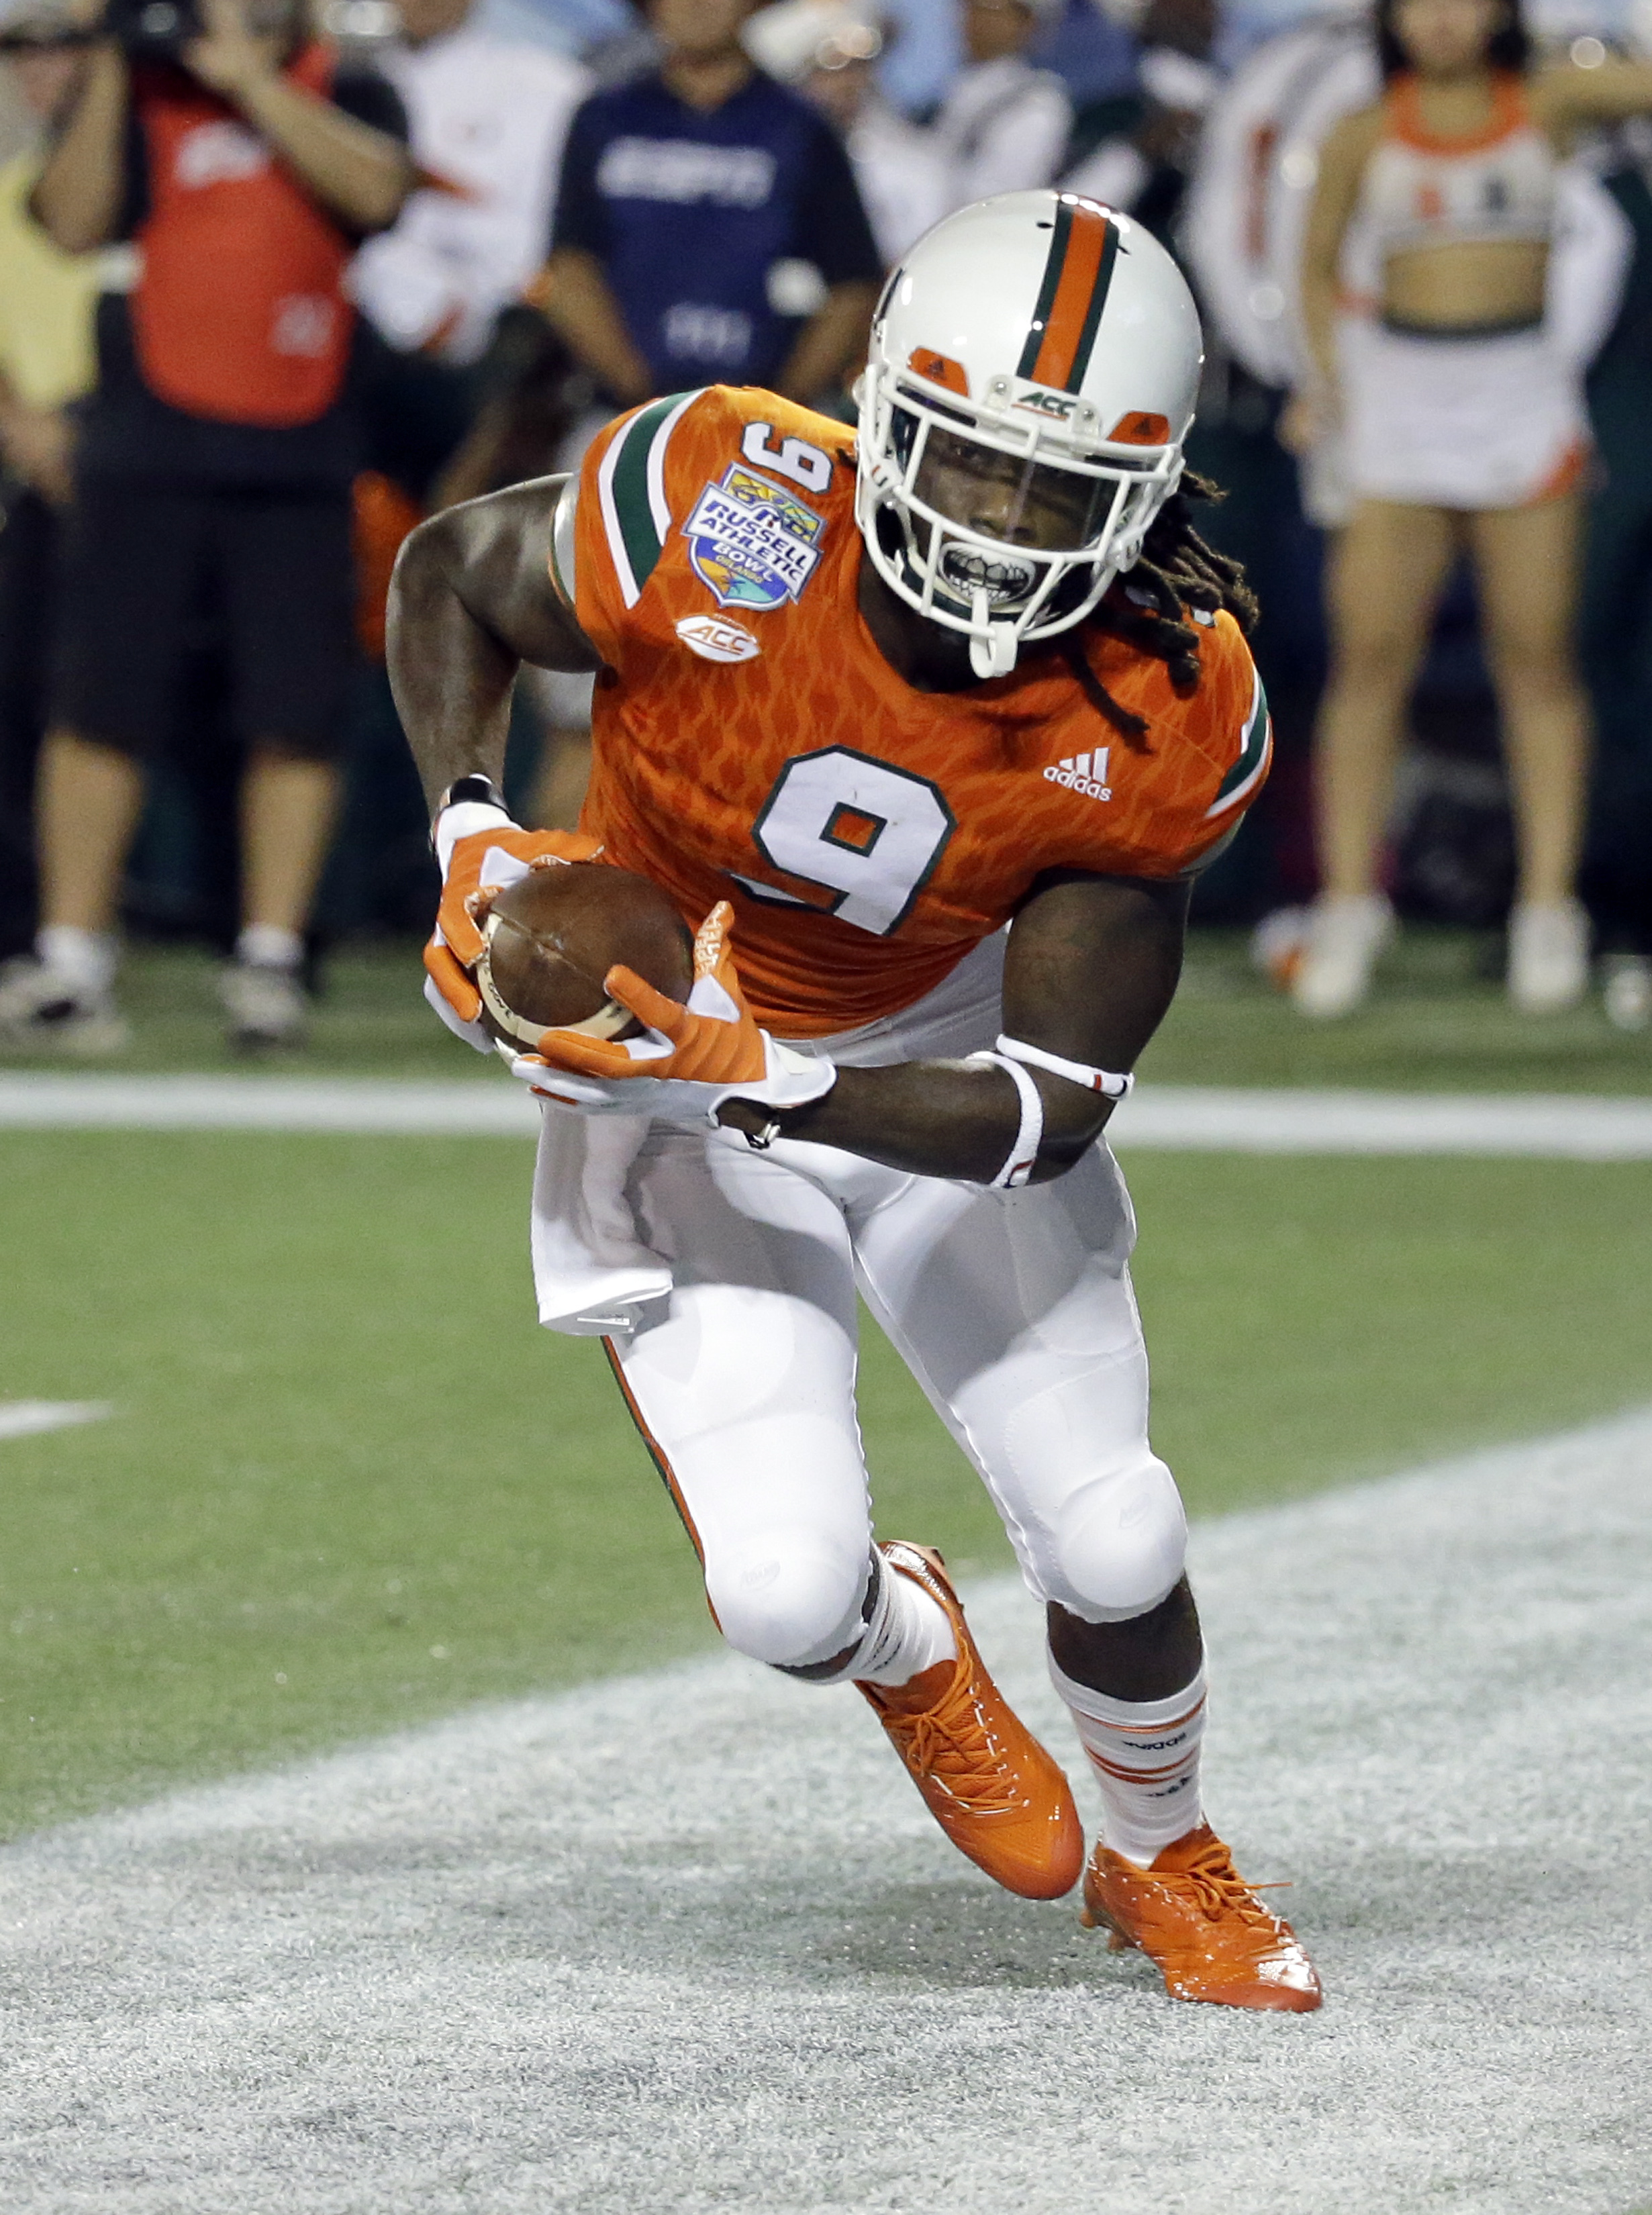 Miami wide receiver Malcolm Lewis (9) catches a pass in the end zone for a 3-yard touchdown against West Virginia during the first half of the Russell Athletic Bowl NCAA college football game, Wednesday, Dec. 28, 2016, in Orlando, Fla. (AP Photo/John Raou